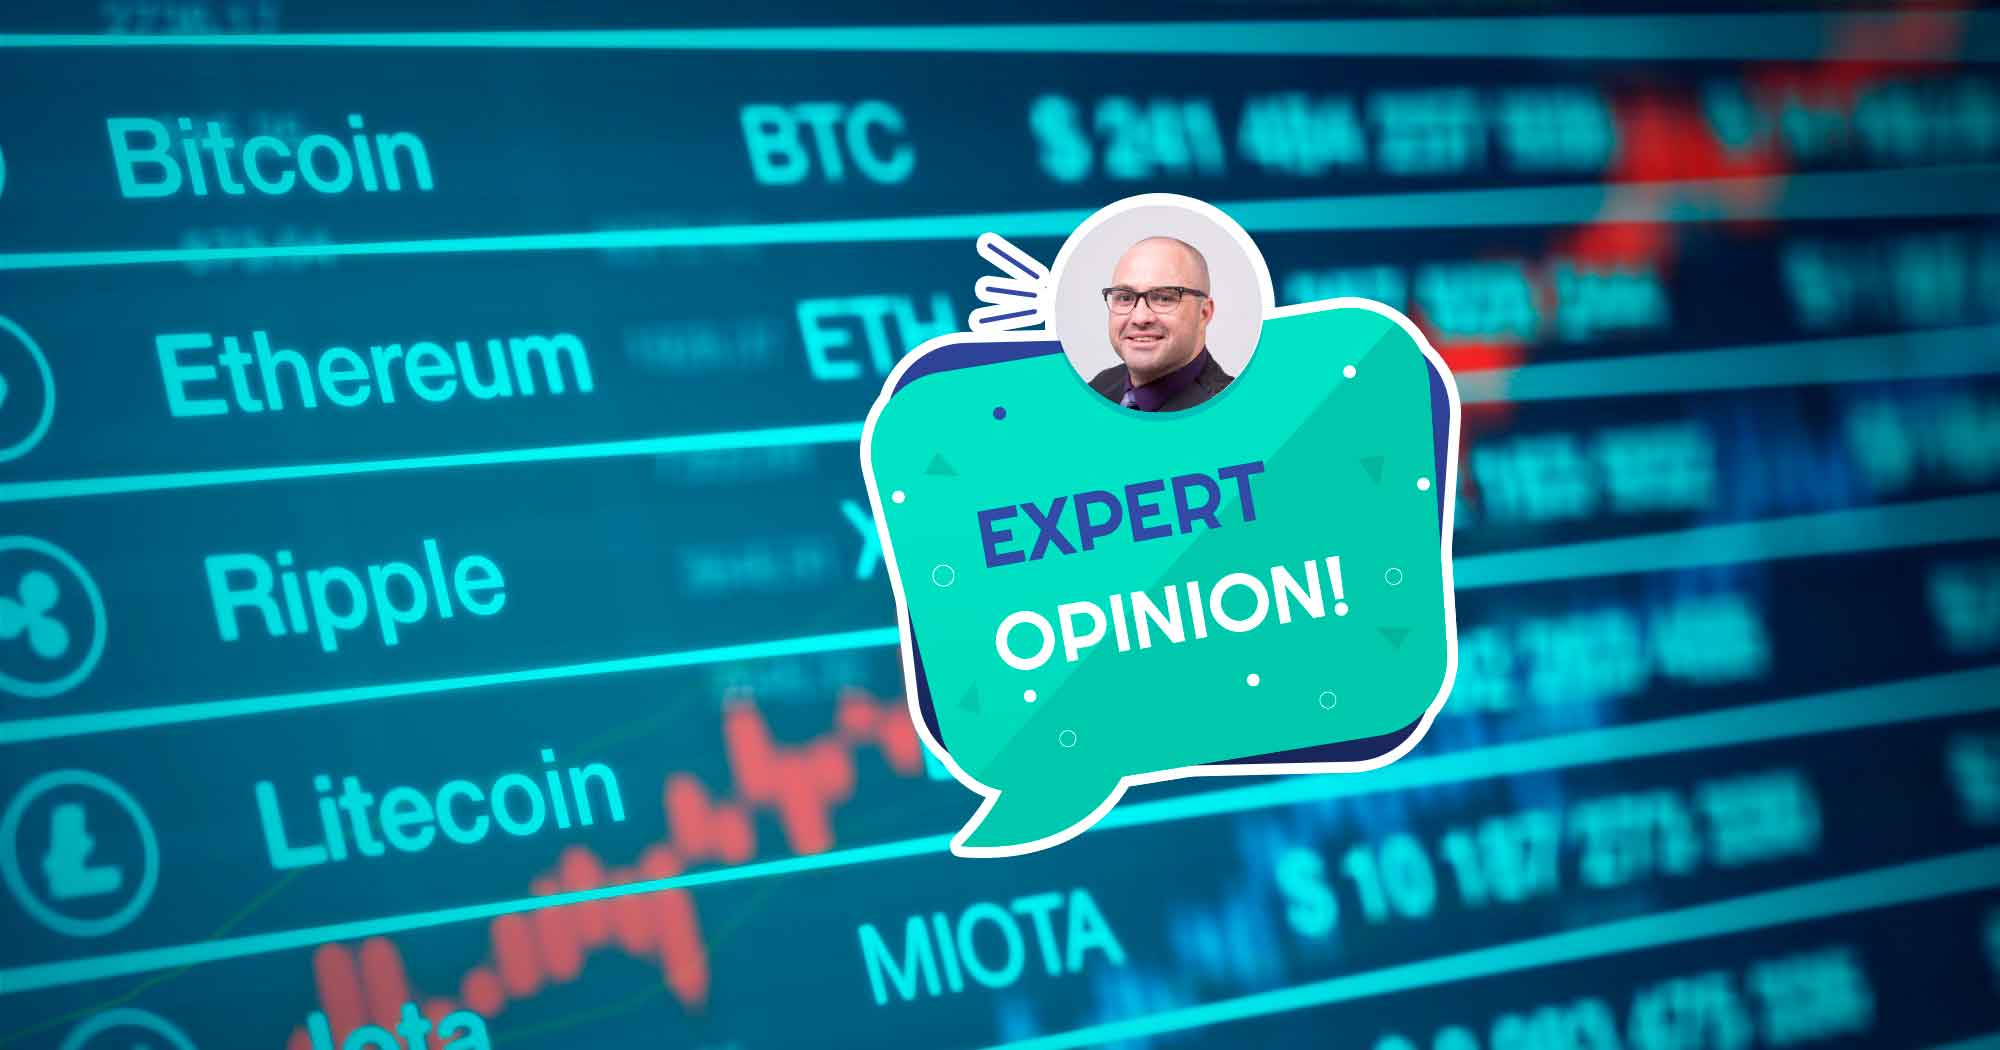 Expert Opinion: Bitcoins Outlook Looks all Green Technically and Fundamentally While Altcoins Too Show Signs of Positivity